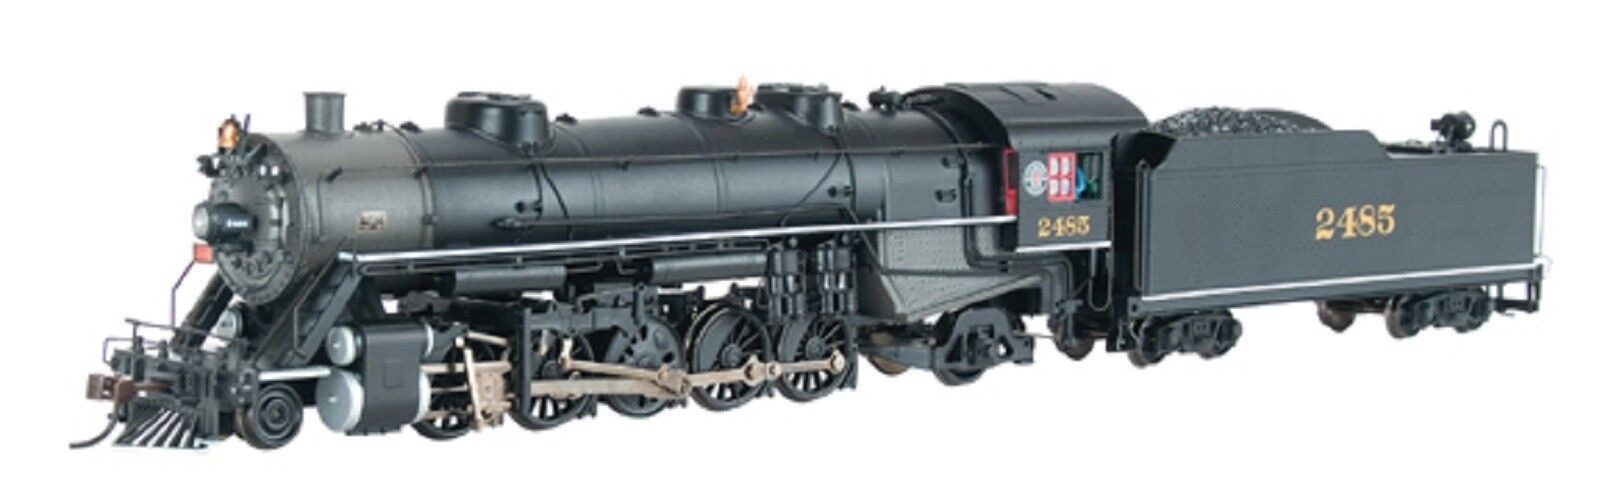 83310 Locomotive vapeur 2-10-2 USRA BACHMANN SPECTRUM DCC Train HO